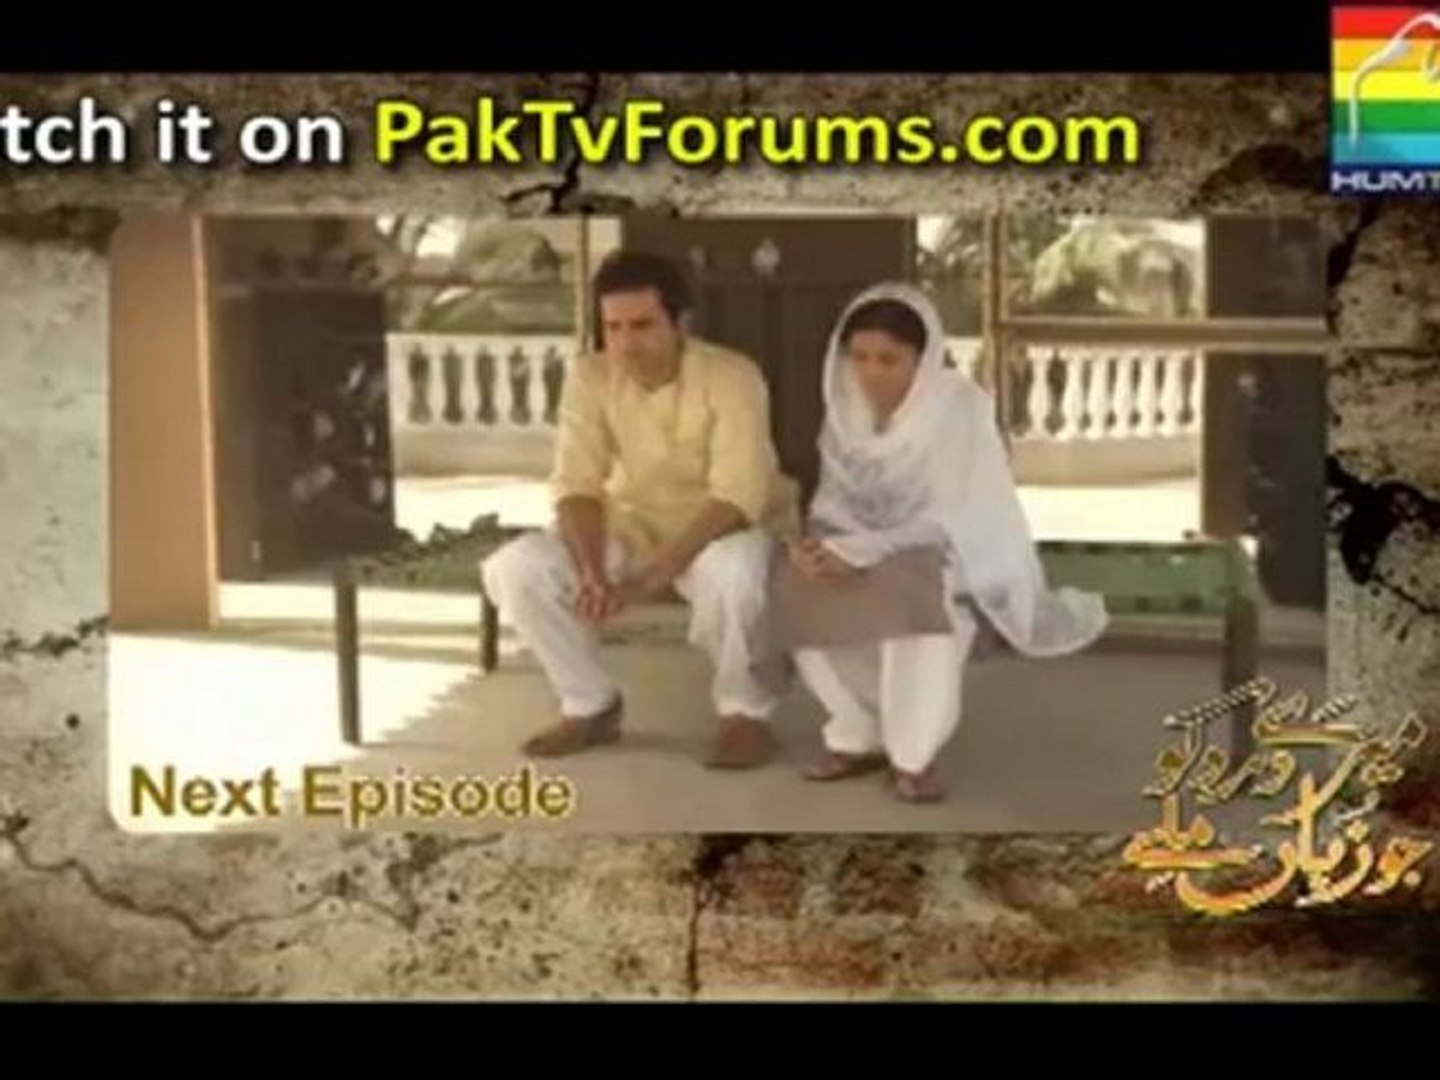 Meray Dard Ko Jo Zuban Miley by Hum Tv Episode 11 - Preview